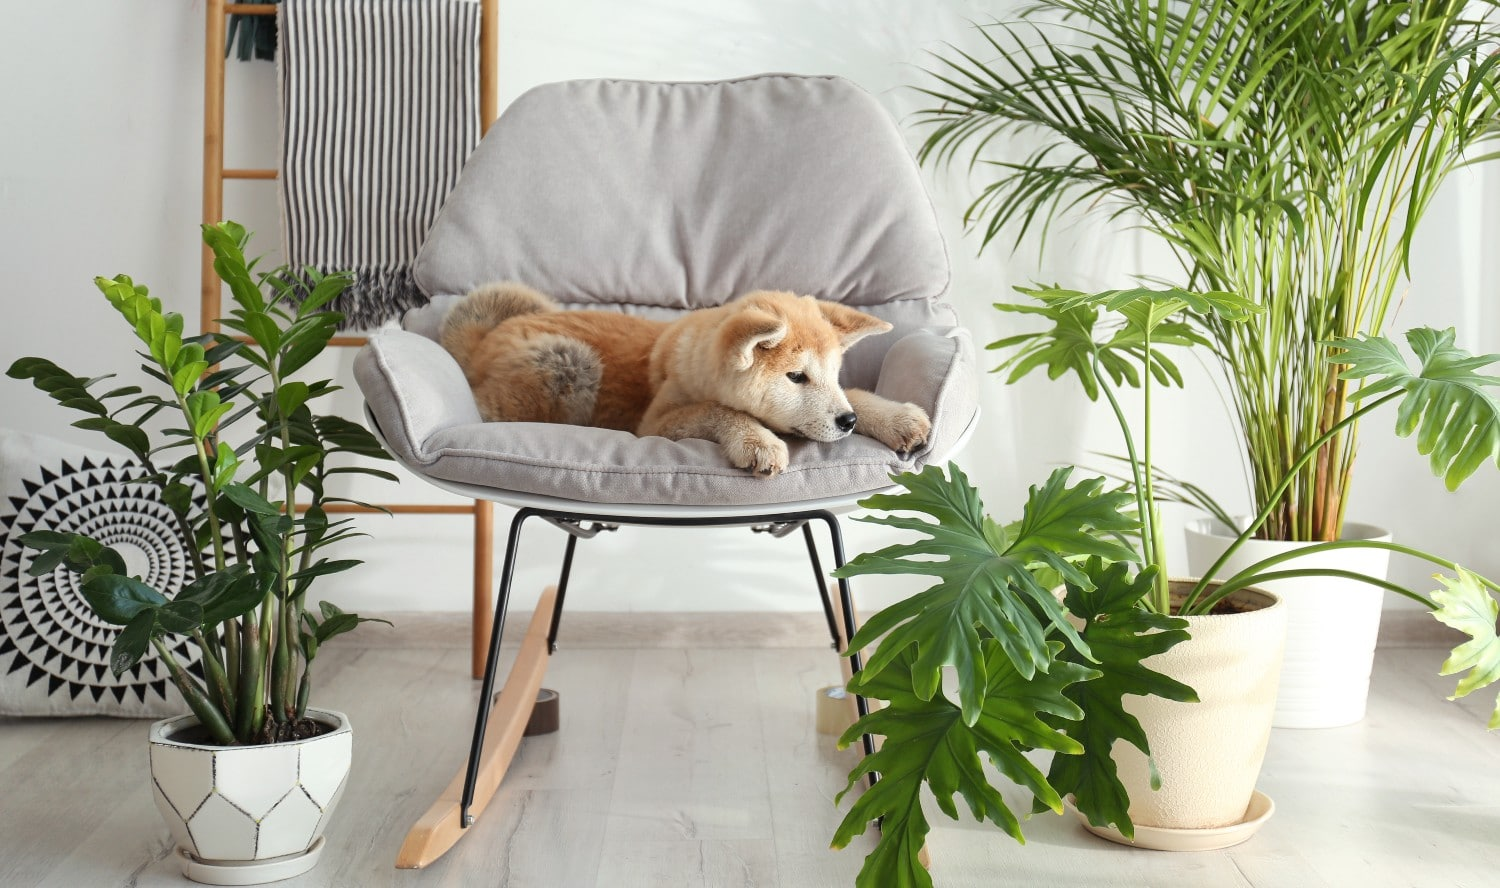 10 Houseplants That Are Poisonous to Your Dog — And Safe Alternatives